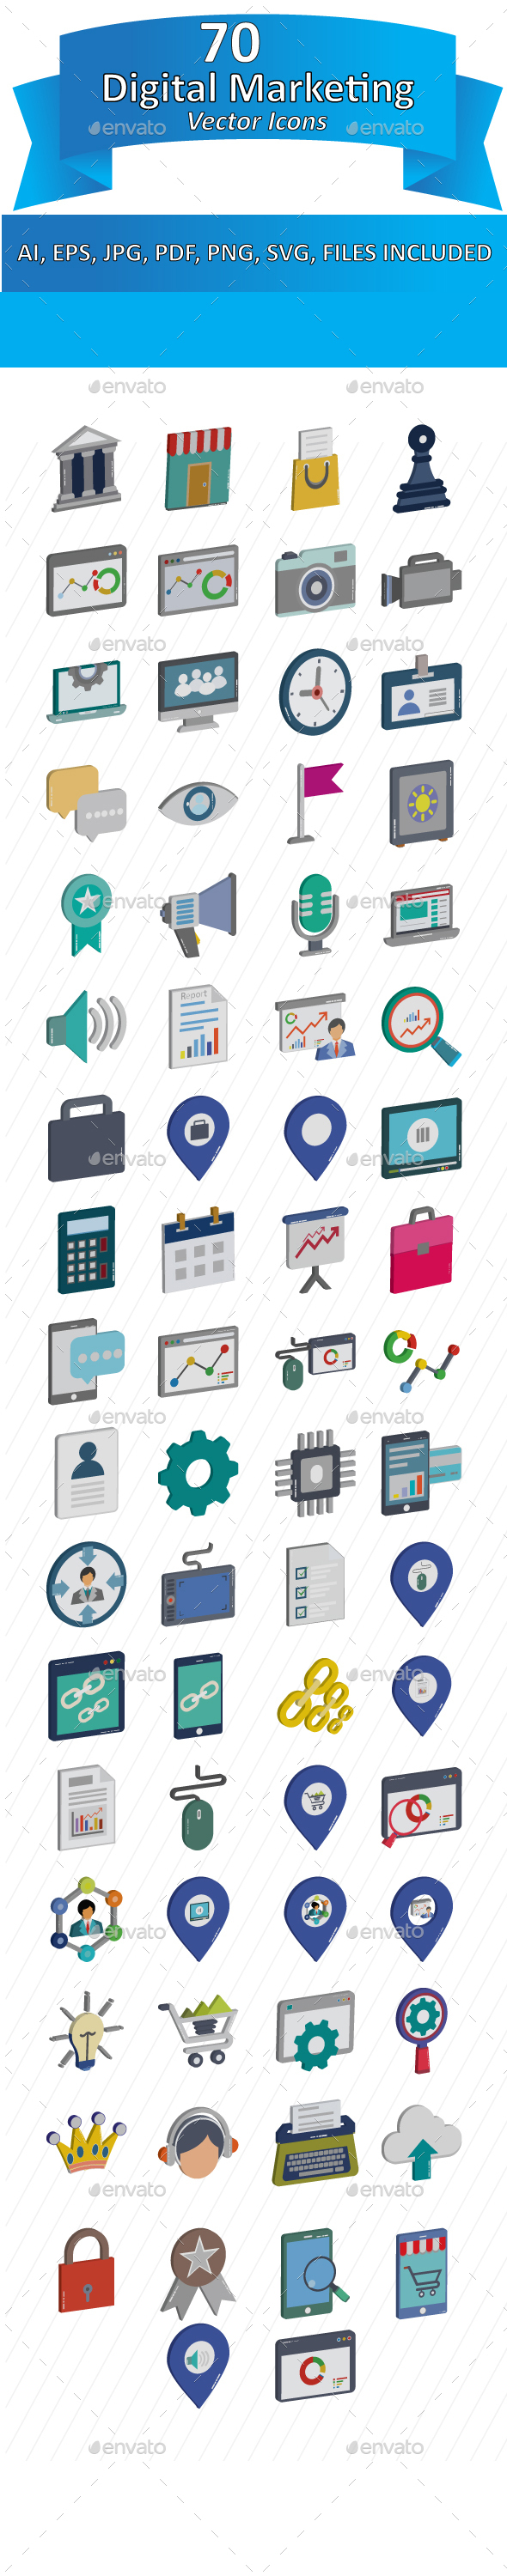 Digital Marketing Isometric Color Illustration Vector Pack - Icons